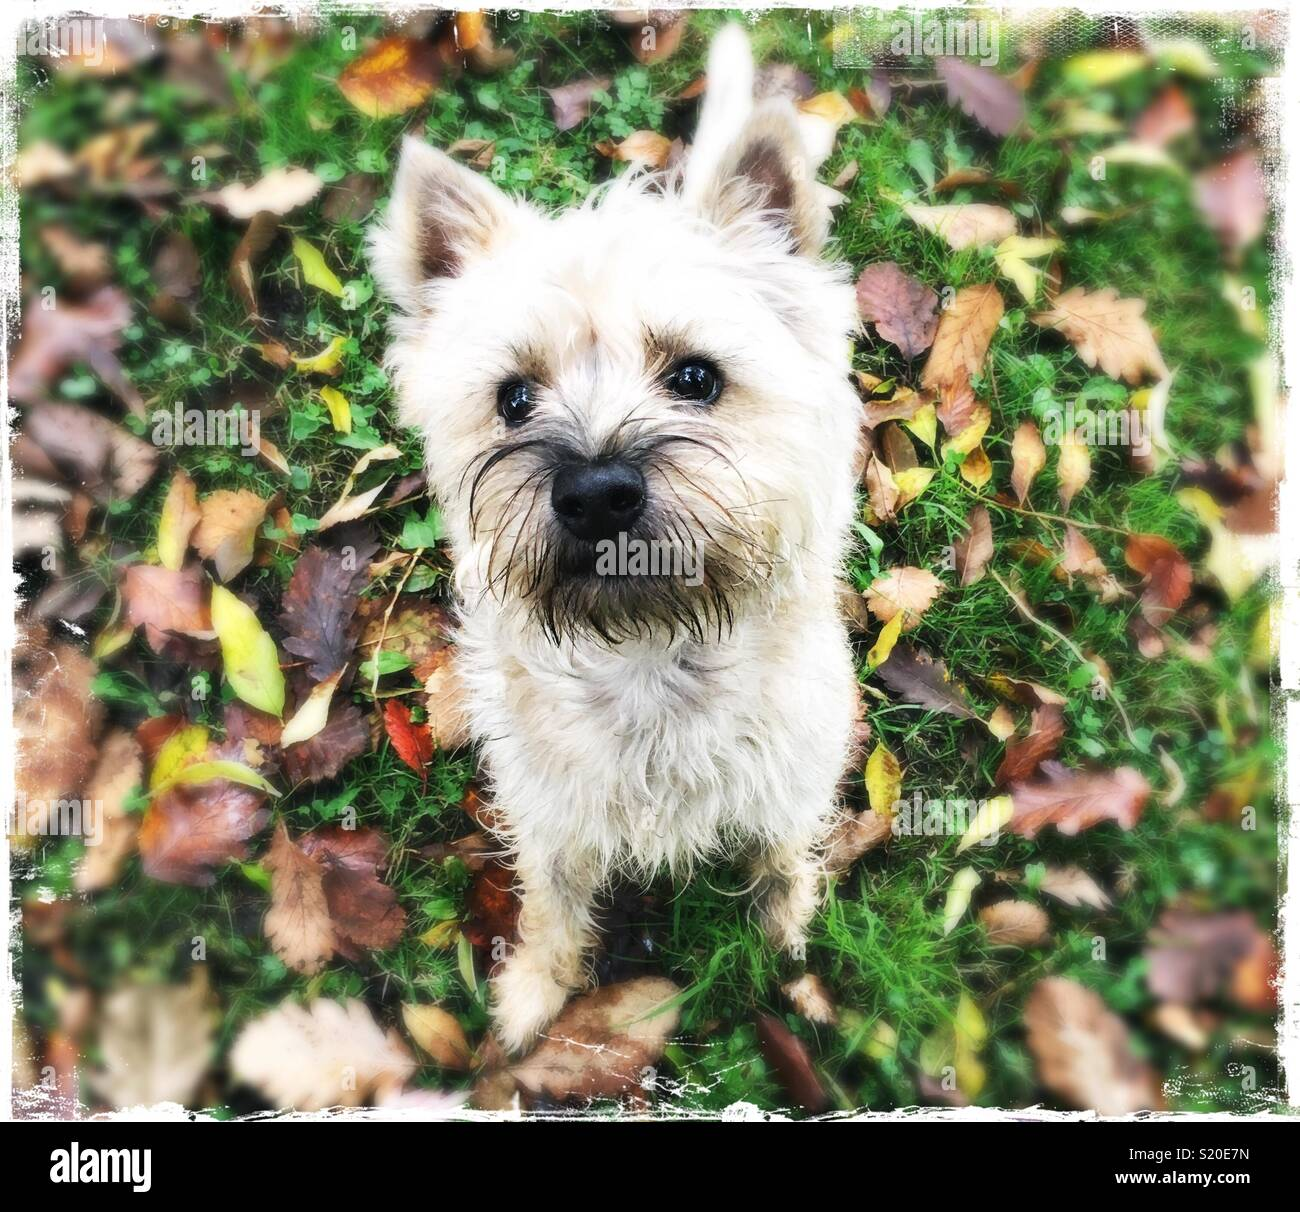 Must see Cairn Terrier Ball Adorable Dog - cute-cairn-terrier-puppy-looking-up-at-camera-with-autumn-leaves-on-the-ground-S20E7N  2018_57436  .jpg